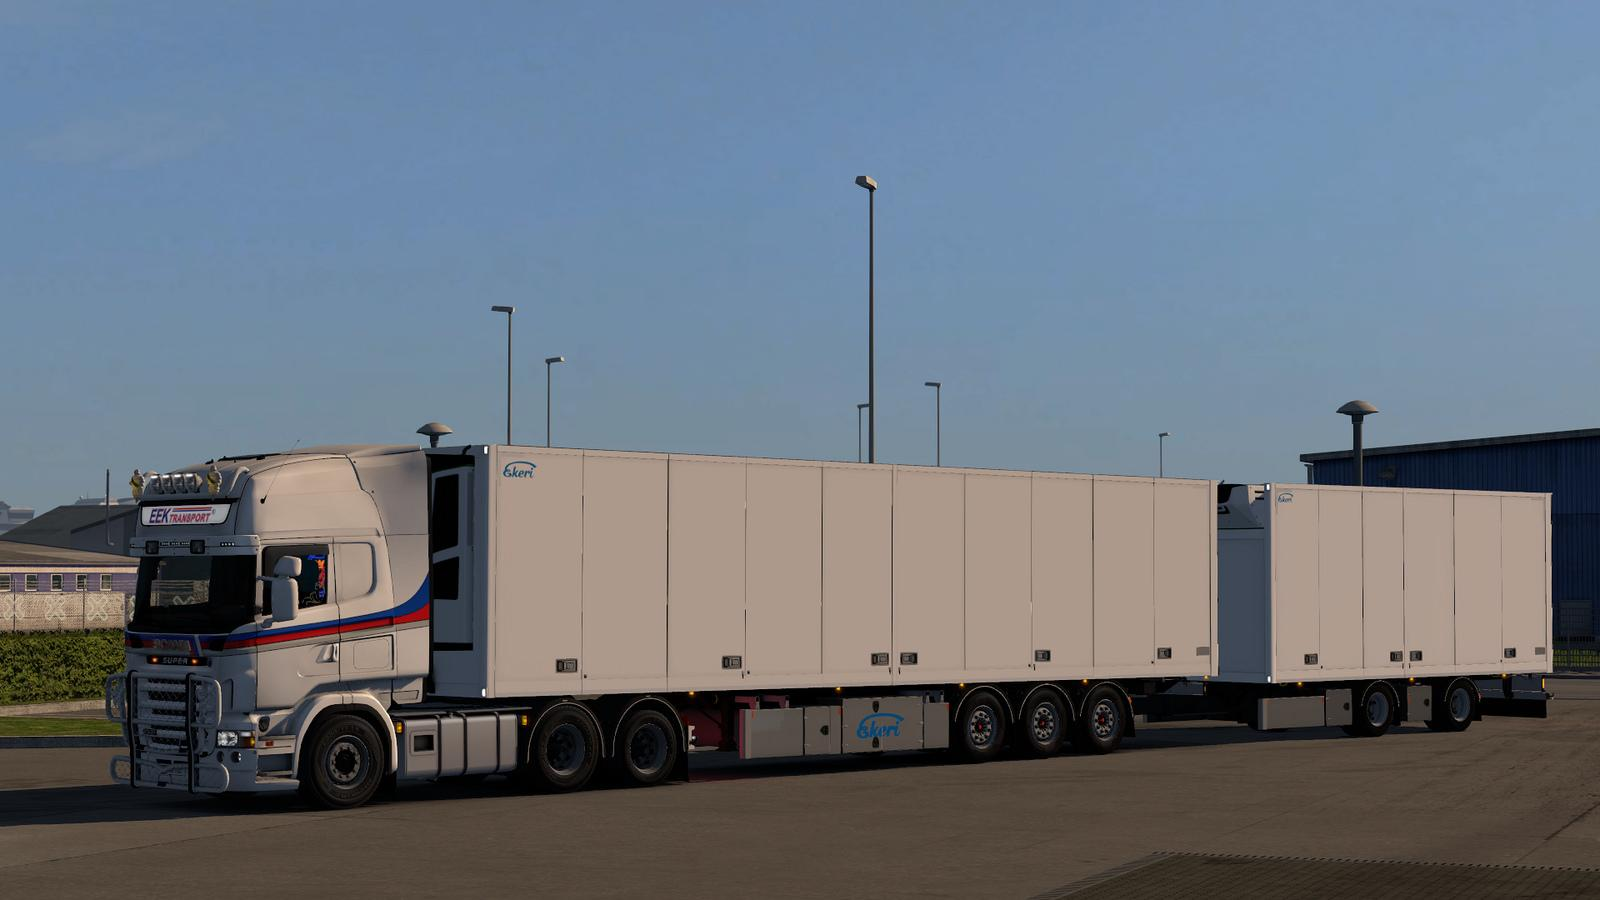 ets 2 patch 1.30 beta